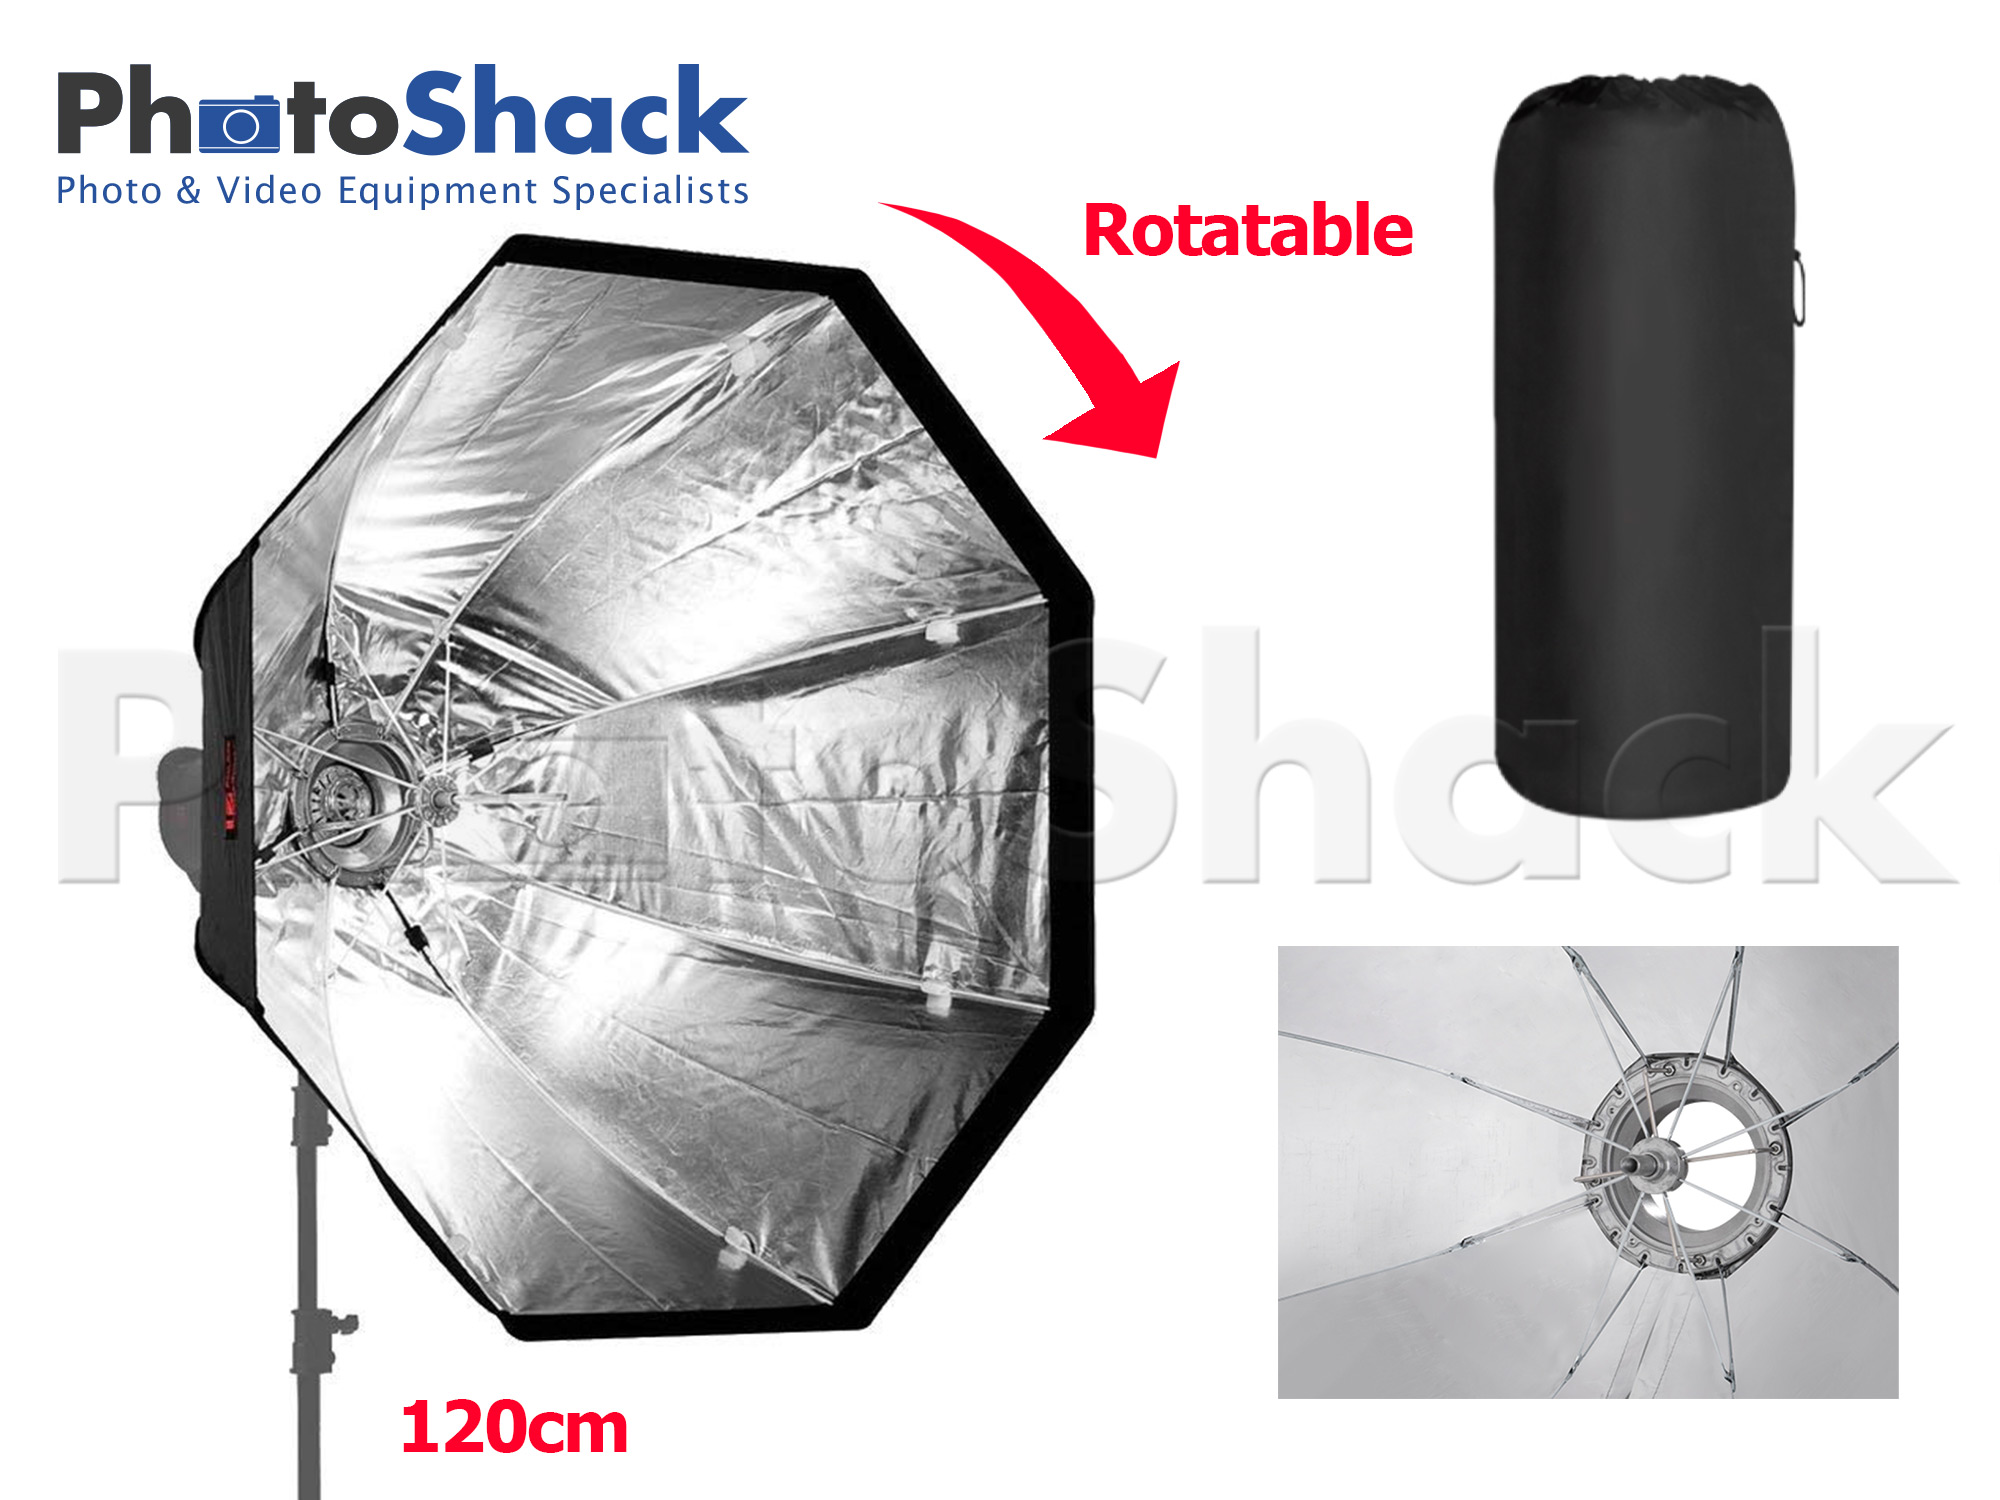 Portable Folding Softbox - Octagonal 120cm